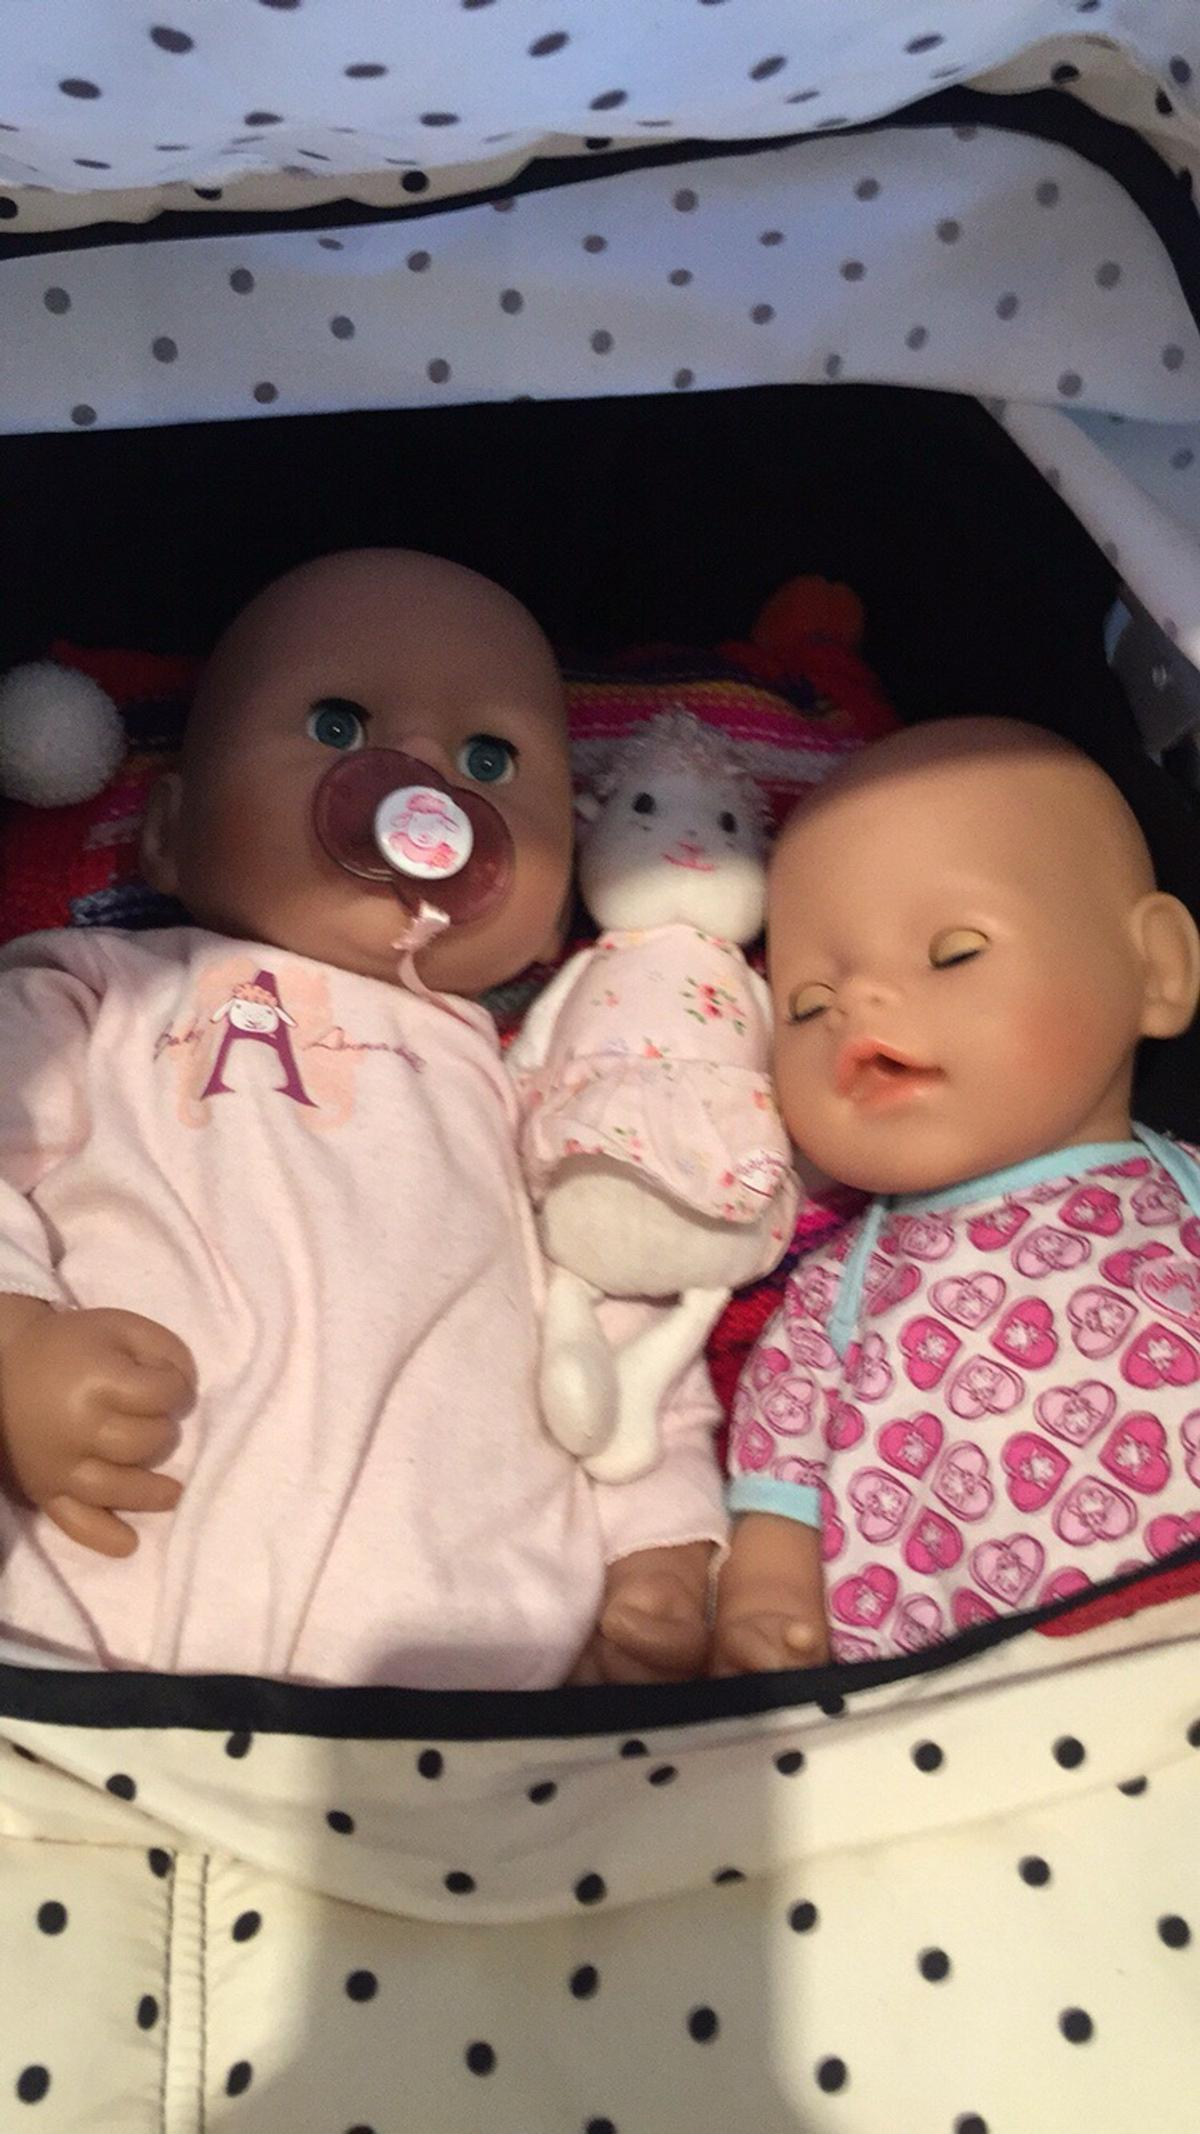 Mamas and papas dolls pram and dolls in TS12 Brotton for £50 00 for